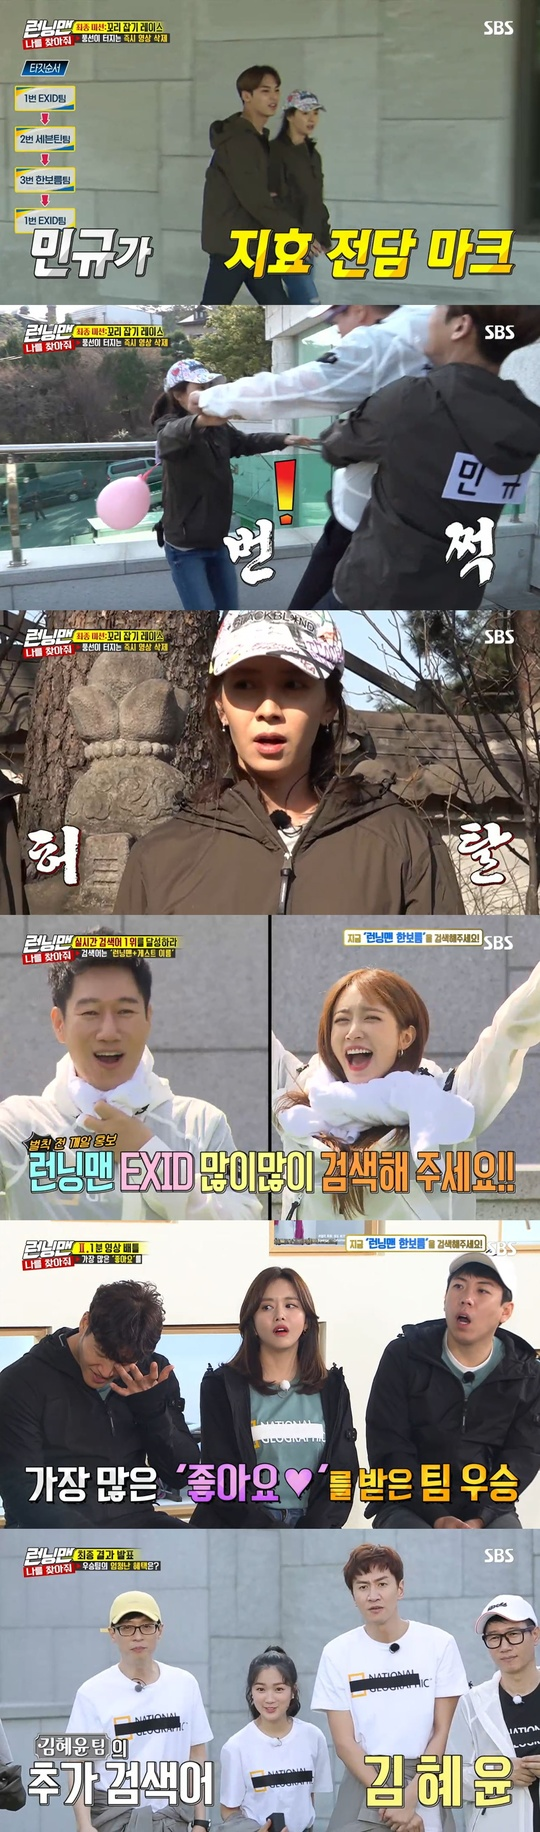 """<p>Seventeen Min-Kyu and Song Ji-hyo Running Man Best 1 minute accounted.</p><p>Viewing rate survey company Nielsen Korea, according to a 4 October 21 broadcast of SBS Running Manper minute, with a maximum application rate of 7. 1%(the NCR furniture viewership standard)up to soared and major advertising officials of the important indicators of 2049 target audience viewership4%(2 parts viewership standards)in the same time period, viewership ranked # 1.</p><p>It is Seventeen of the wins and Lenny, EXIDs Hani and brush, actor Kim Hye Yun, and actress Han Bo-reum guest-starred as a real-time Search Term 1 for the war unfolded. Seventeen - Song Ji-hyo, Min together with the sister - brother team scored and Kim Hye Yun, Yu Jae-Suk, mineral water and team, Han Bo-reum - Kim Jong Kook, both for feel and for guys. EXID is a stone with one and one boarded the ship. These are total three rounds and real-time Search Term 1 Above must achieve to win the game started.</p><p>The first round of 'those days Chart # 1'was. From 1993 to 2018, the 'popular' Chart # 1 Comedy hit of the game as the clumsy team of the water when the bomb baptism suit. Kim Hye Yun is a water bomb to cotton in order to hid their dance skills unfold and the quiz began. But where shapeless dancing skills in material analysis and mineral water """"not to talk about it, but did"""", """"well I thought you were.""""said Kim Hye Yun, surprised to laugh, I found myself. The fight at the end Han Bo-reum team 'that chart'the winner it became the top of the screen on 'Running Man Han Bo-reum' who takes the benefit was obtained. 2 for Team Seventeen team, the 3rd place team Kim Hye Yun team is accounted for and water cannons penalties are foraging but EXID team went back.</p><p>Second round team stars 1-minute promotional video produced by 'Running Man' Official SNS the most many like Can the team win the battle. Kim Hye Yun team of 'Solo' choreography from 'Sky Castle' cheat for smoke up our hunters attention, but a variety of """